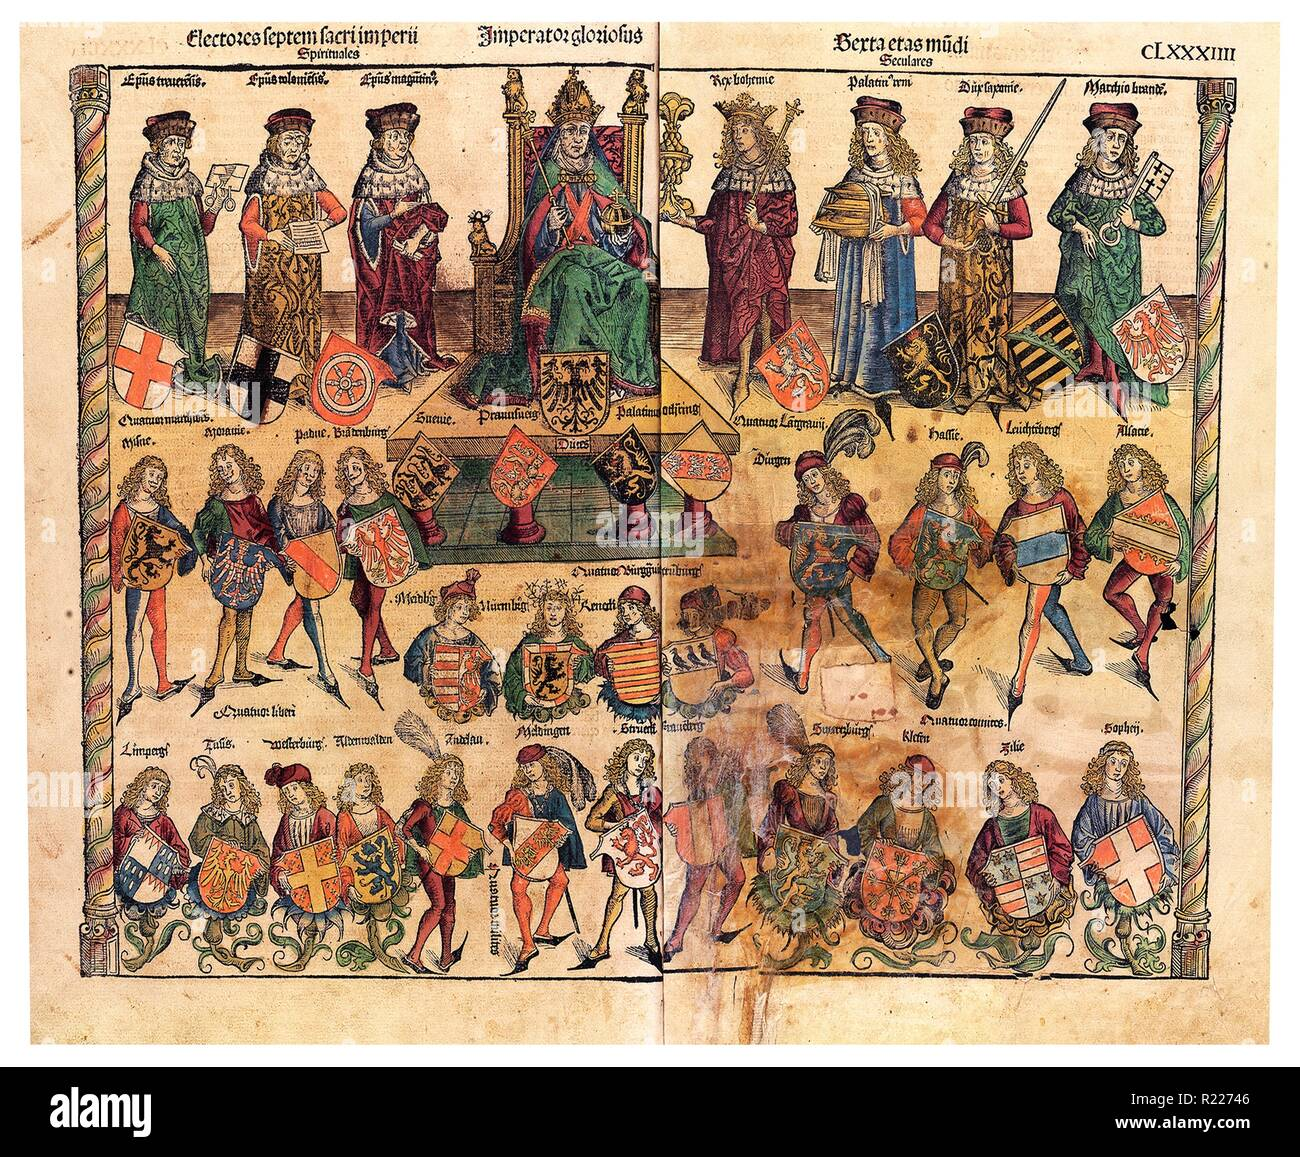 Schedelsche Weltchronik, Struktur des Reiches; 1493. The Schedelsches World Chronicle is an important German manuscript from the late Middle Ages (1493 ). It was published by Hartmann Schedel - Stock Image